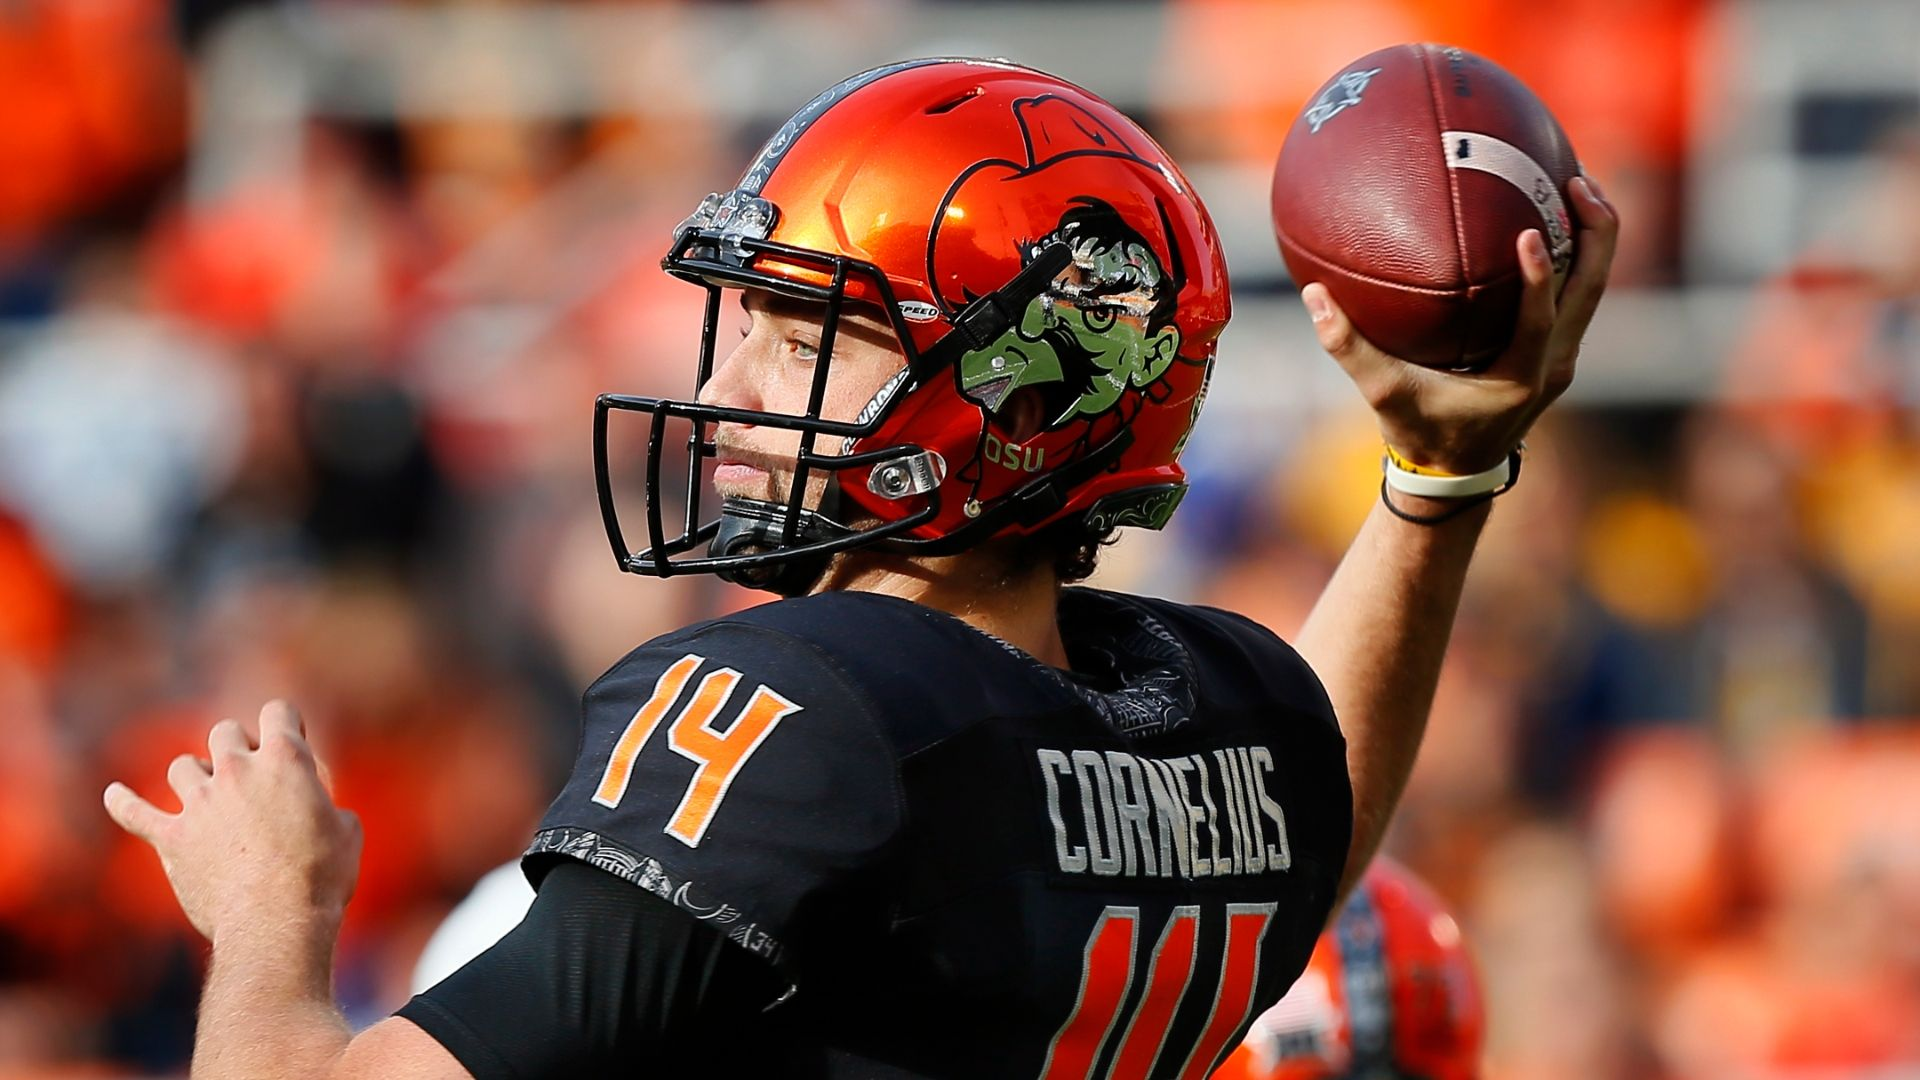 Cornelius leads OK State to upset win over No. 9 WVU